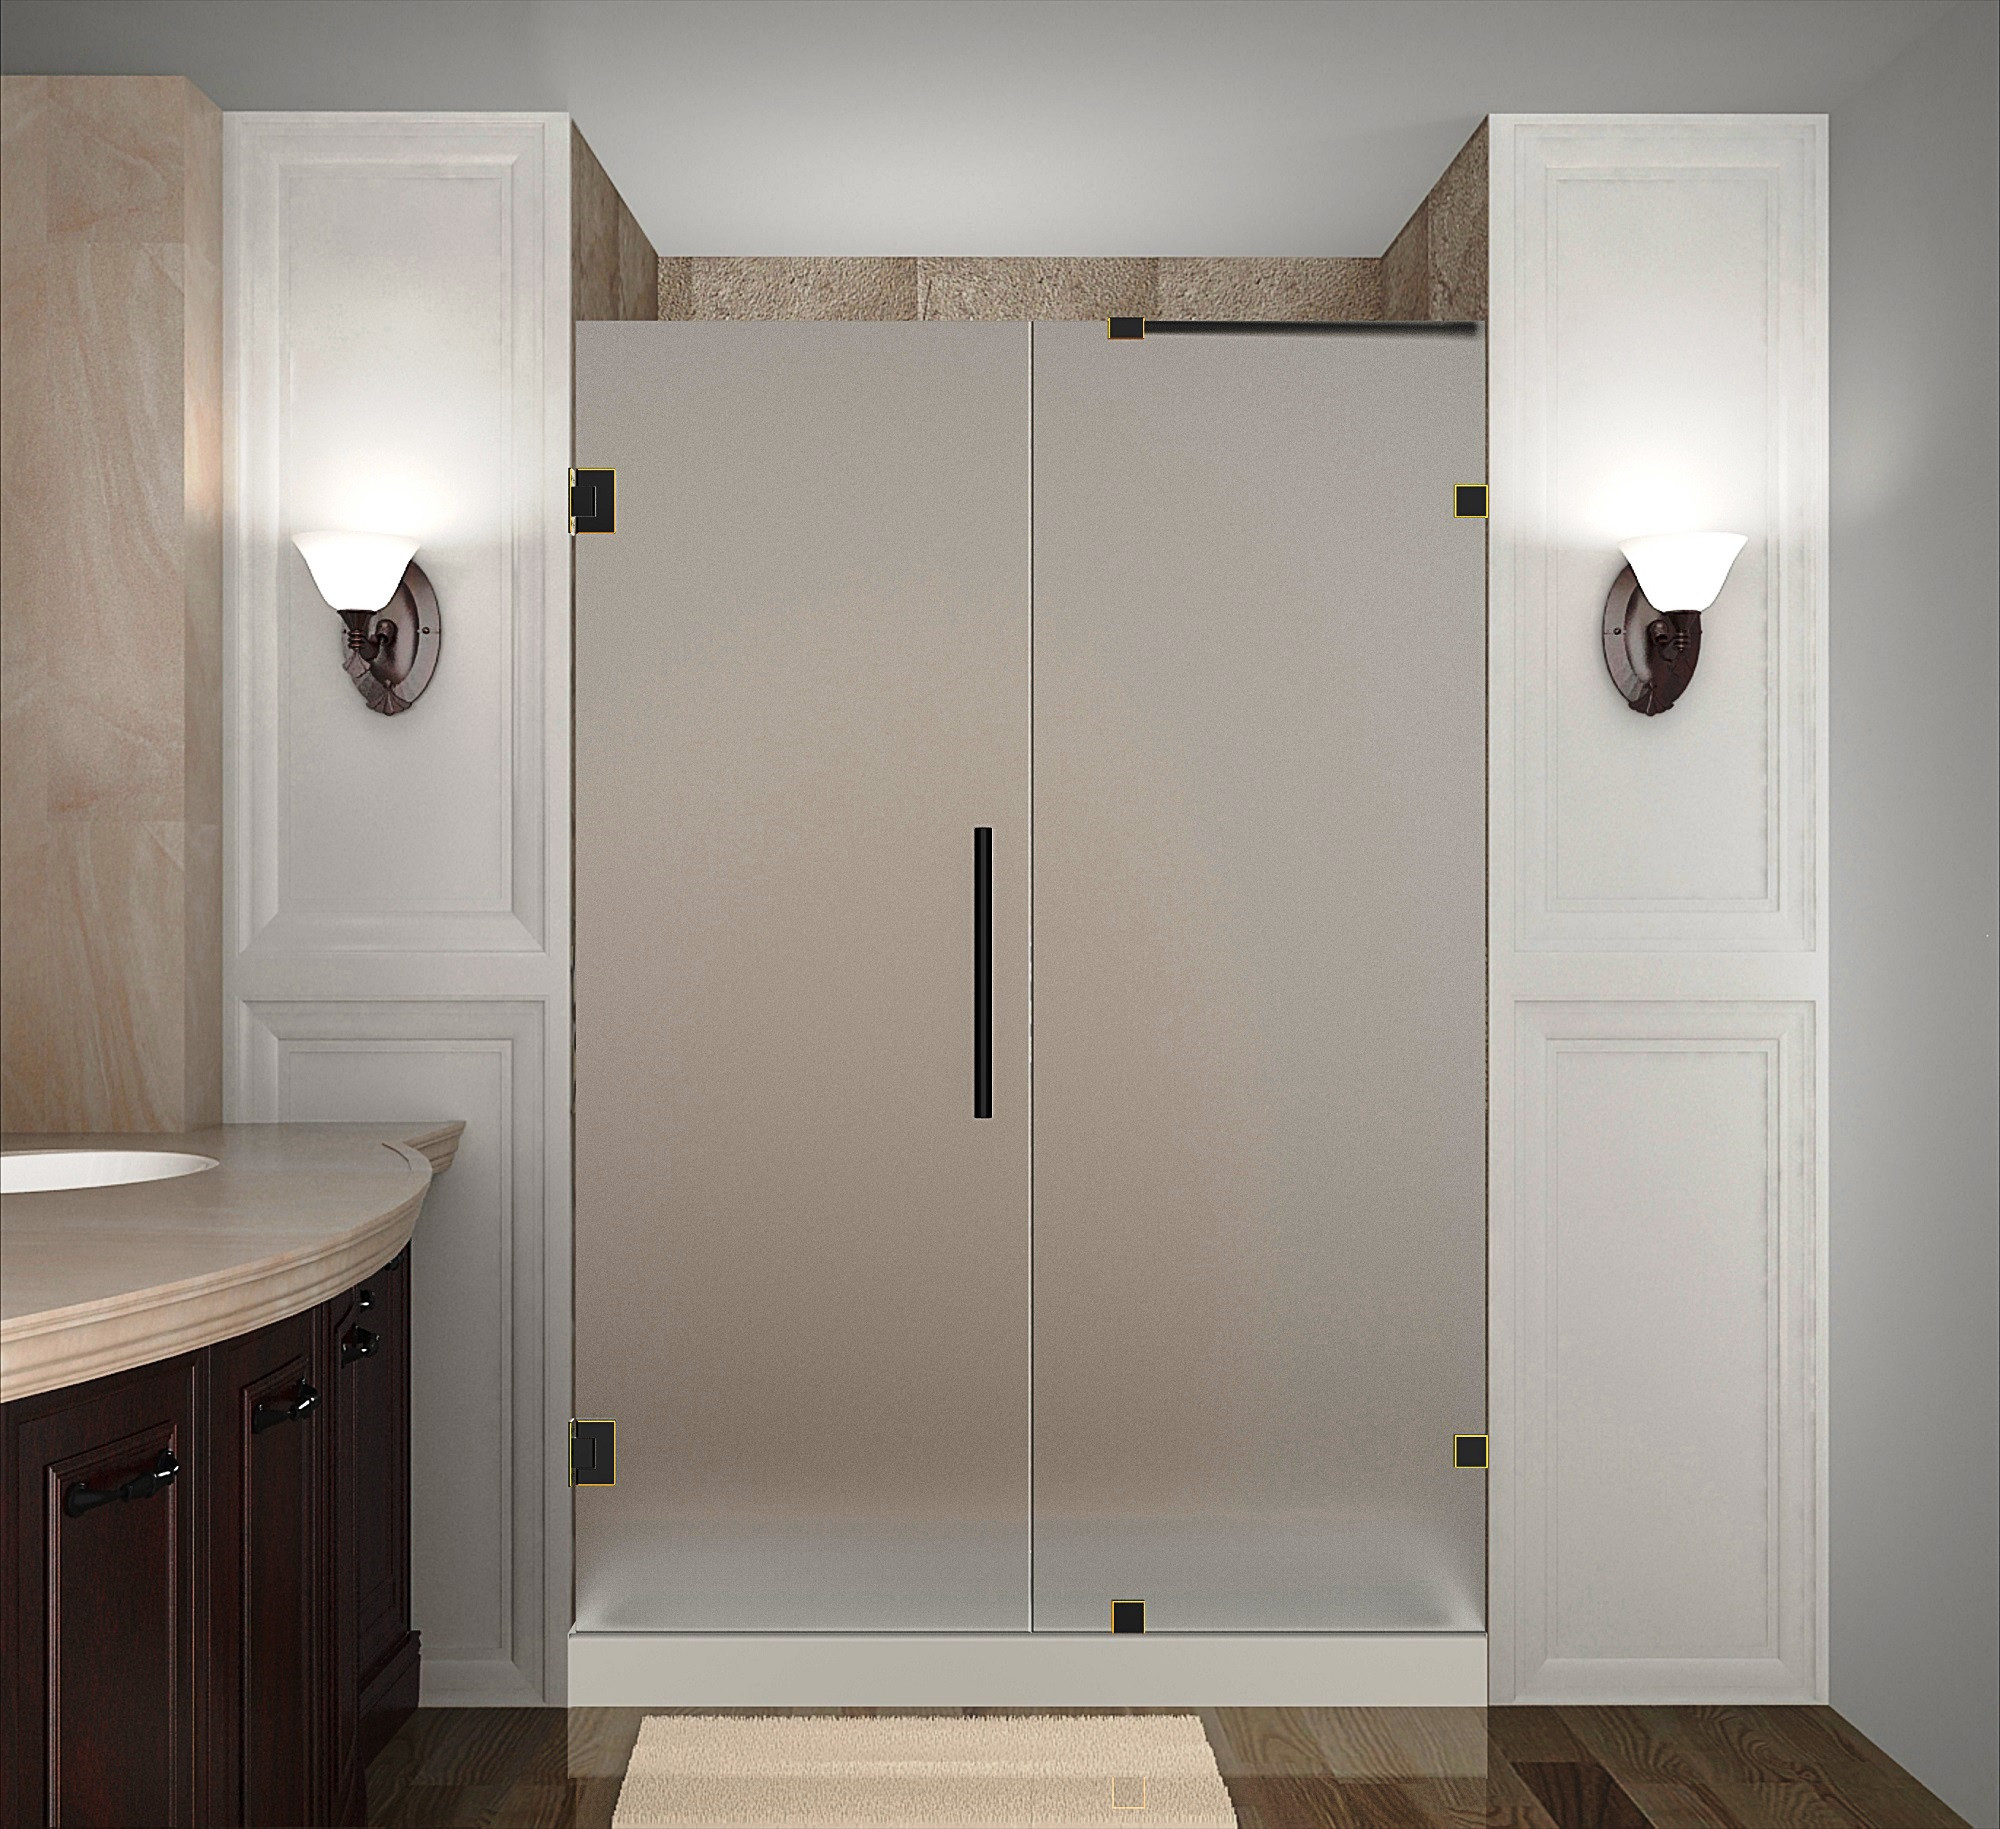 Aston Global SDR985F-ORB-53-10 Frameless Hinged Frosted Glass Shower Door In Oil Rubbed Bronze